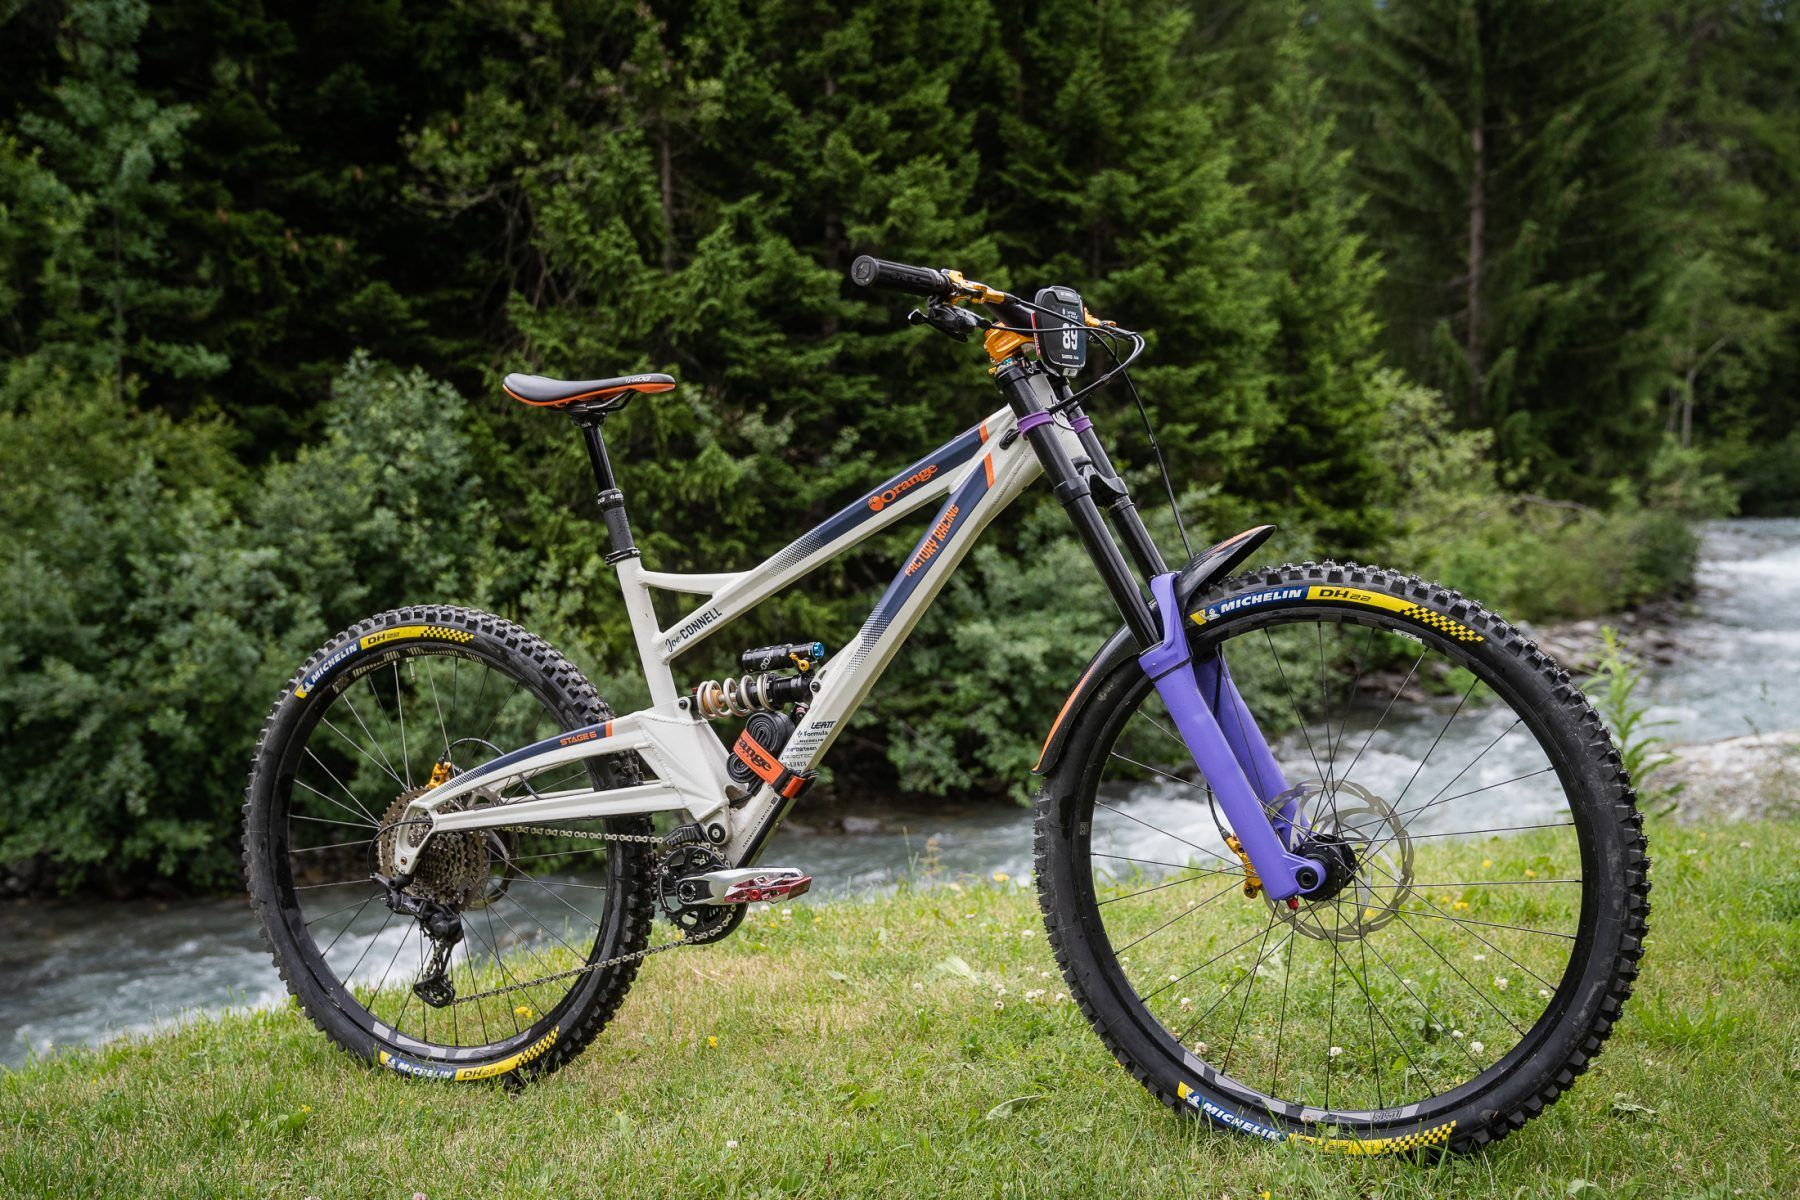 Joe Connell's Orange Stage 6 with prototype dual crown Formula fork